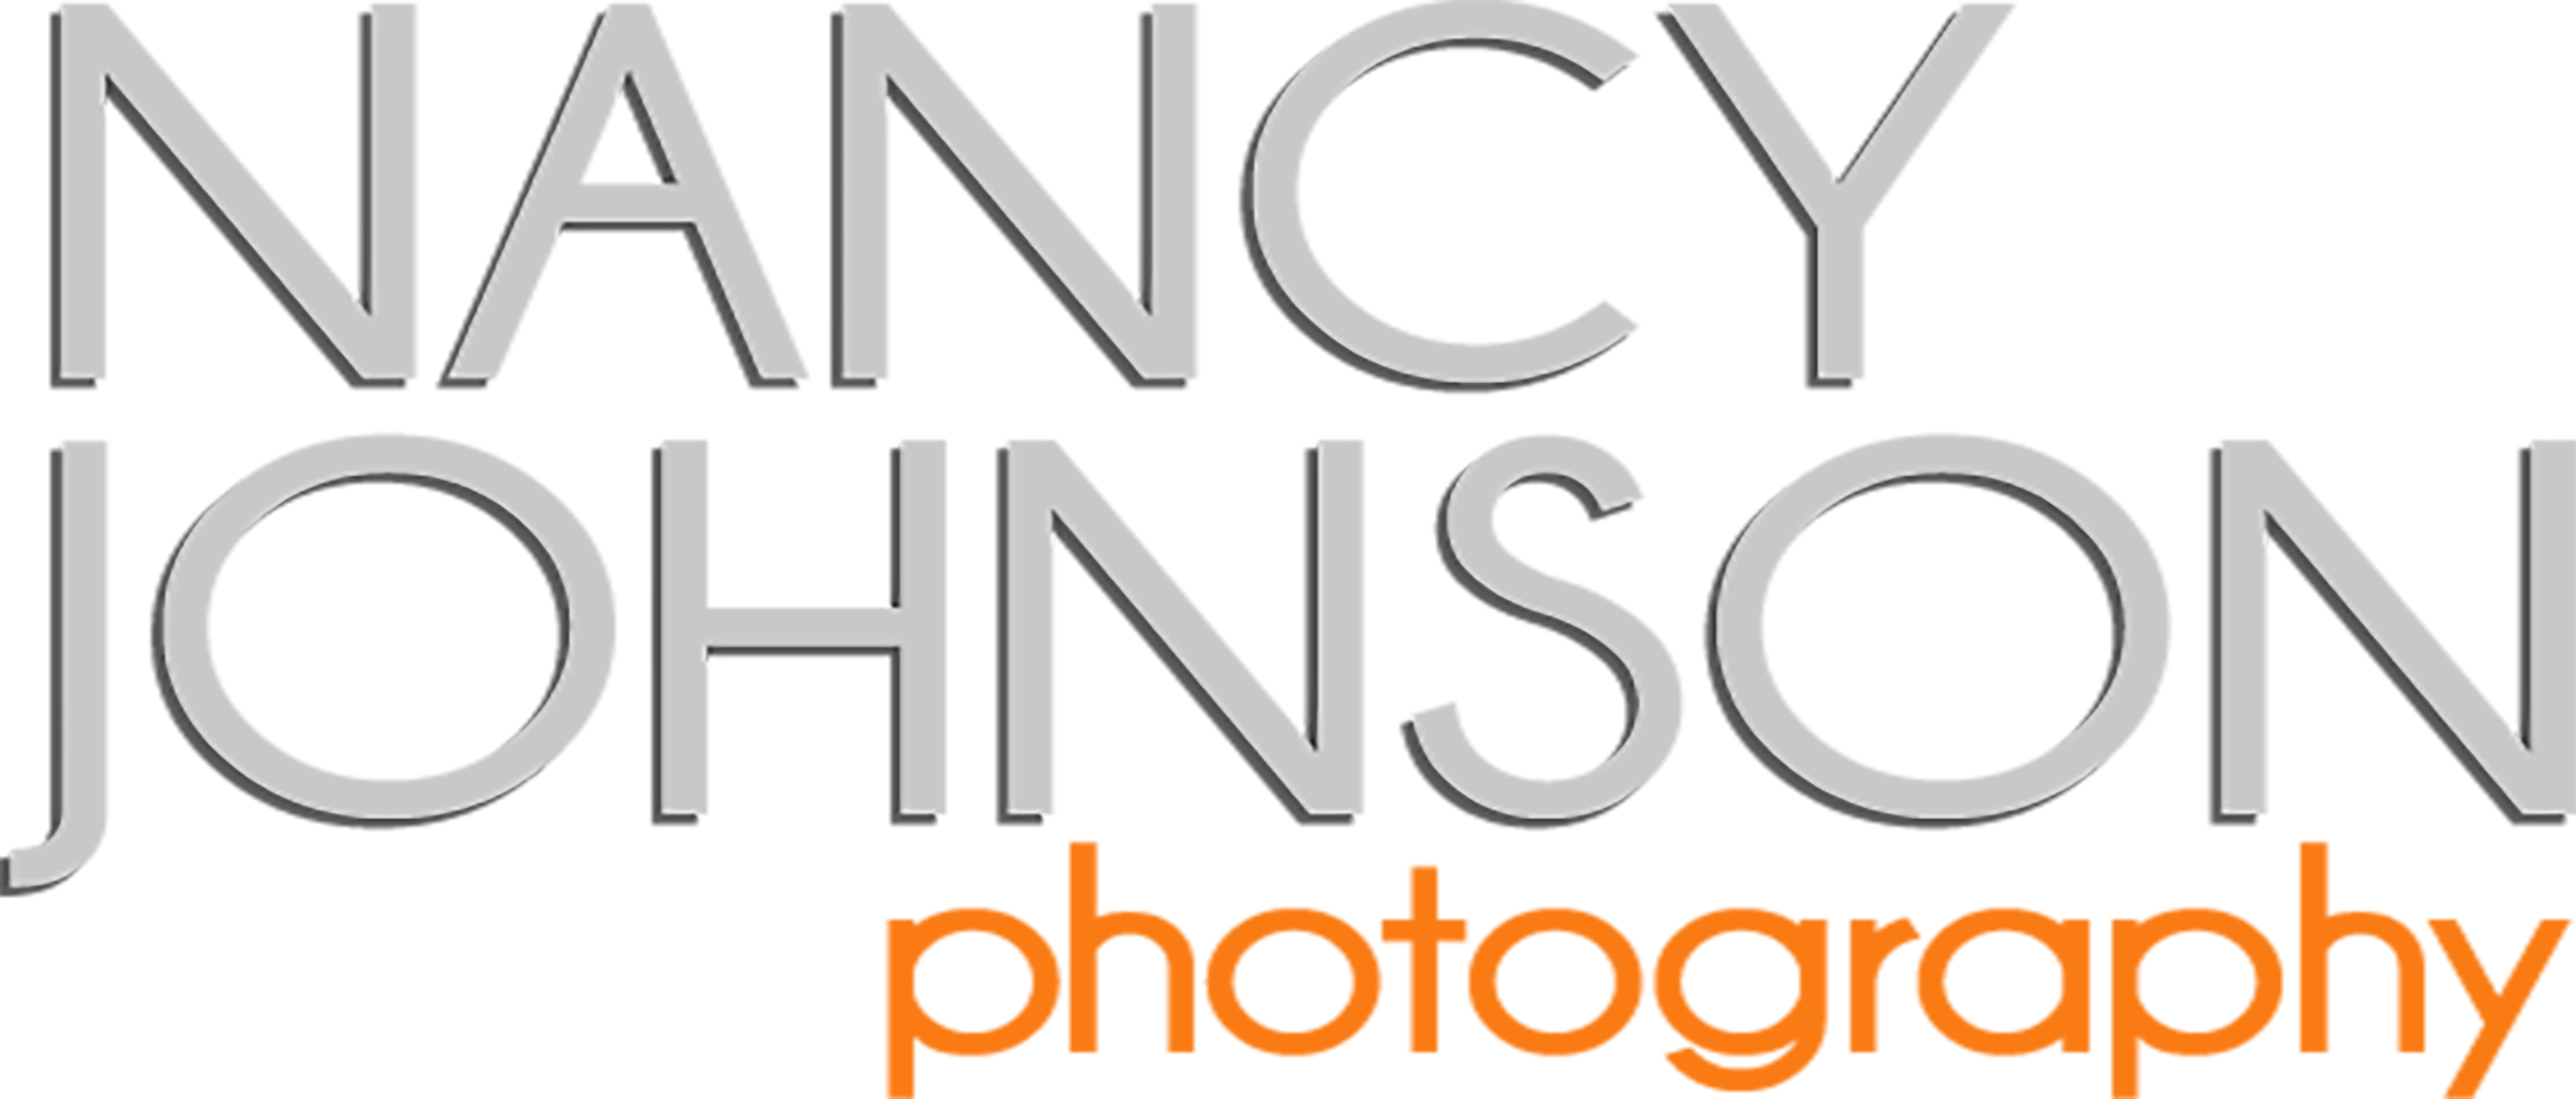 Grey Logo W Orange Boxed 3000x1280